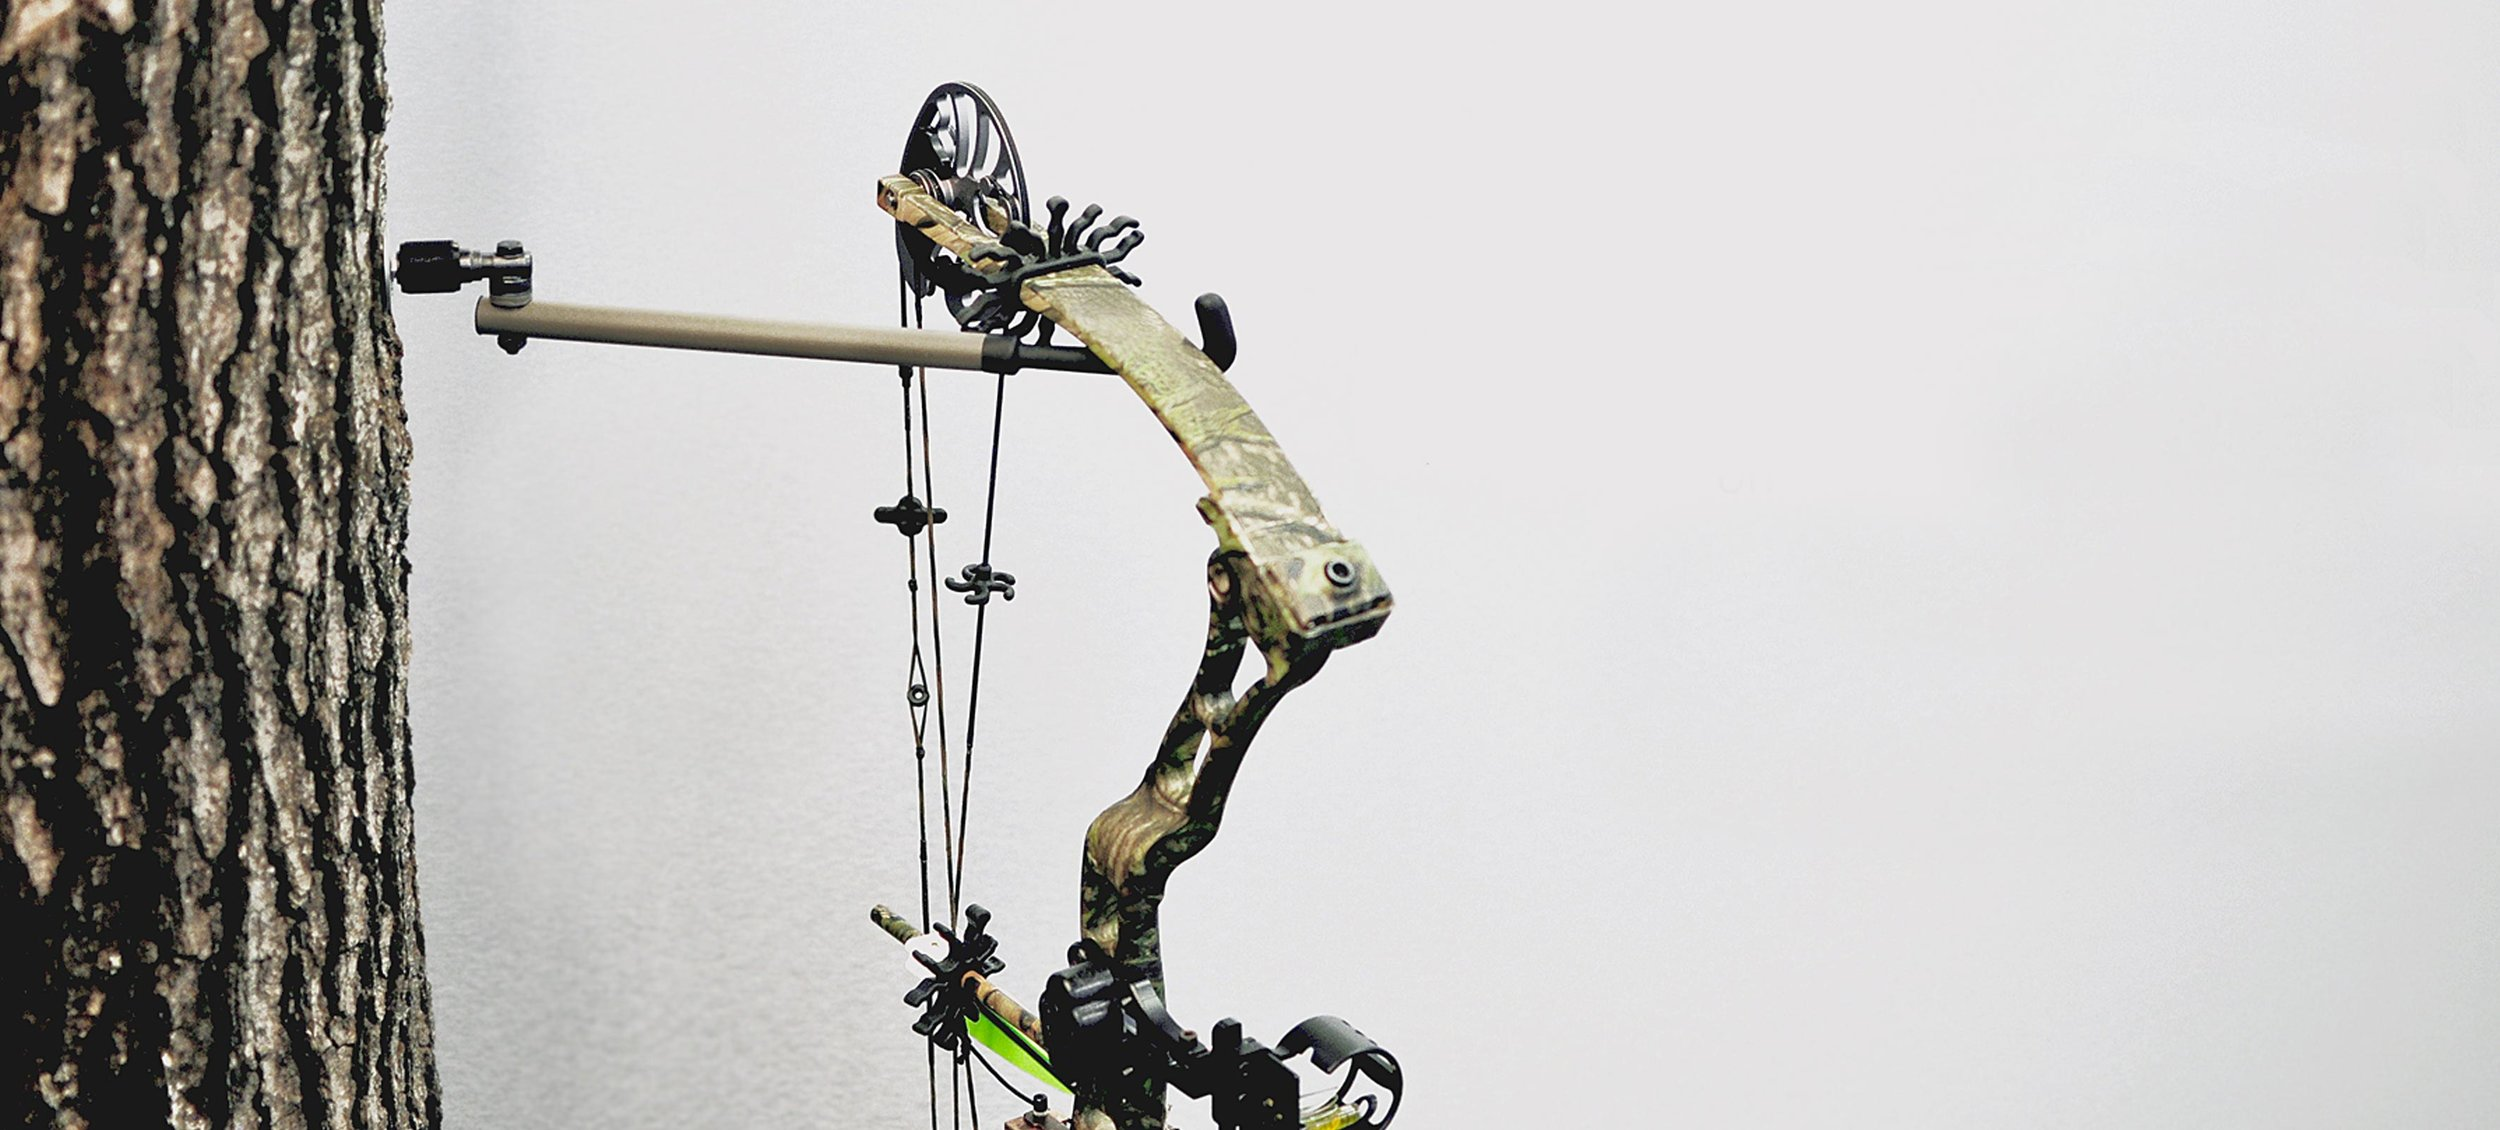 Set, Connect, Hunt - The Morph Pro Bow Hanger System is the most versatile bow hang on the market today. One system with a multitude of possibilities.